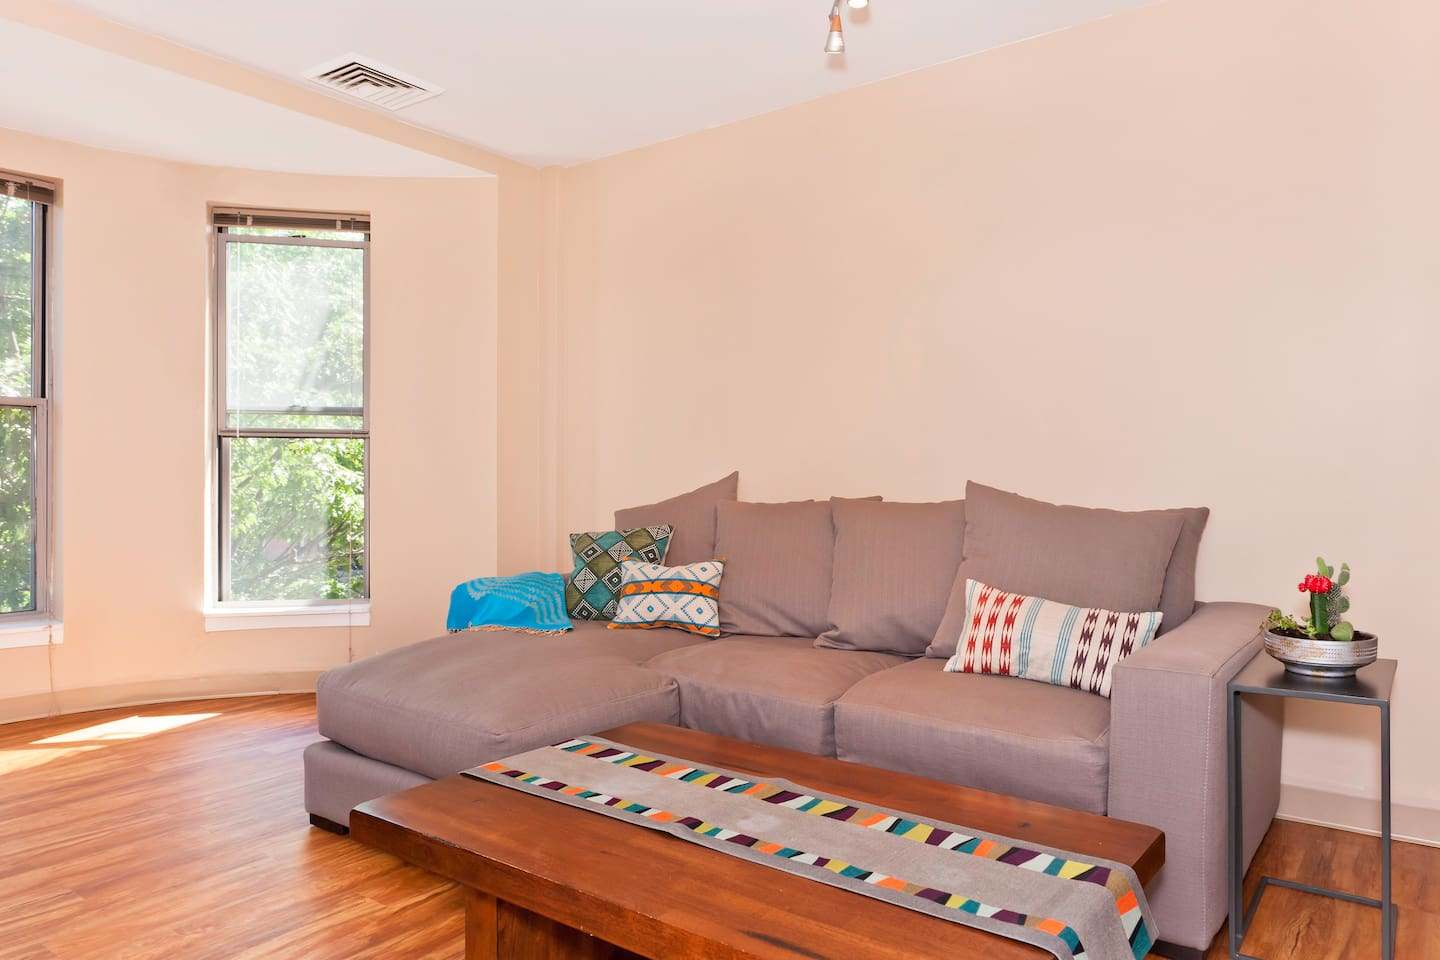 Sunny an spacious with comfy brand new sofa for lounging